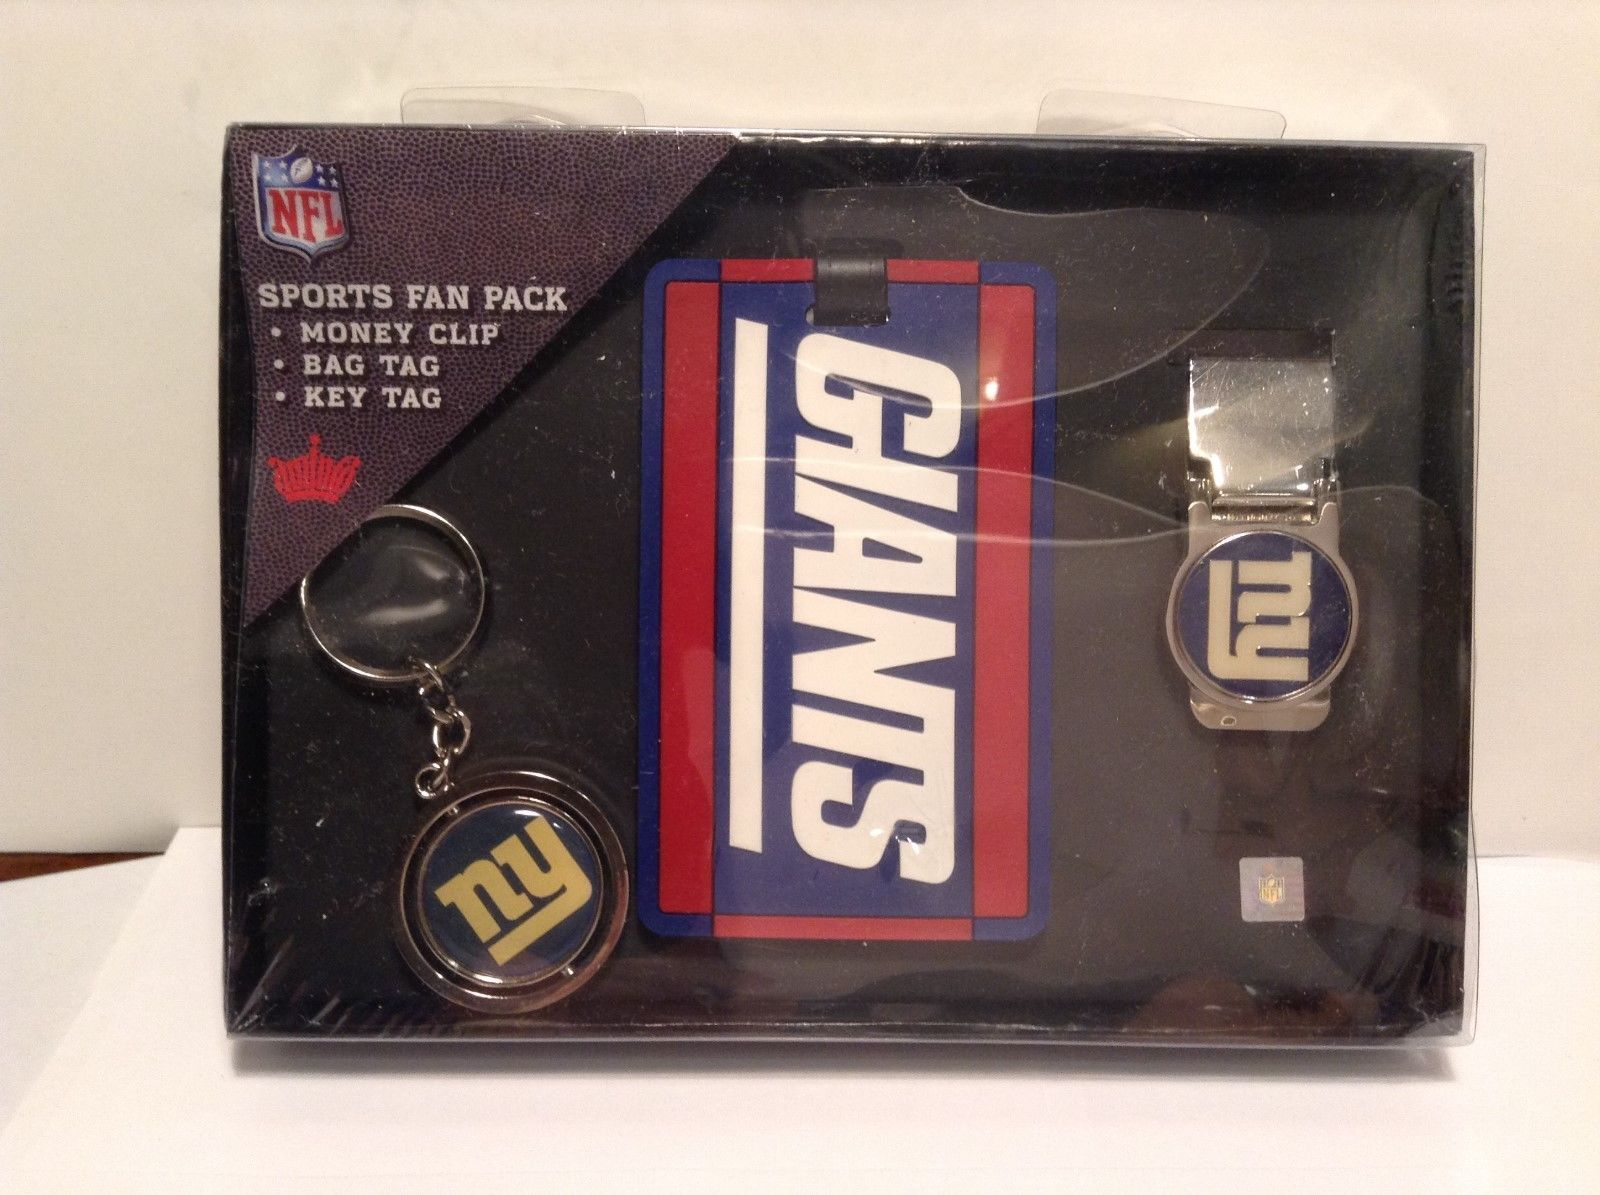 NEW NFL Giants Sports Fan Pack